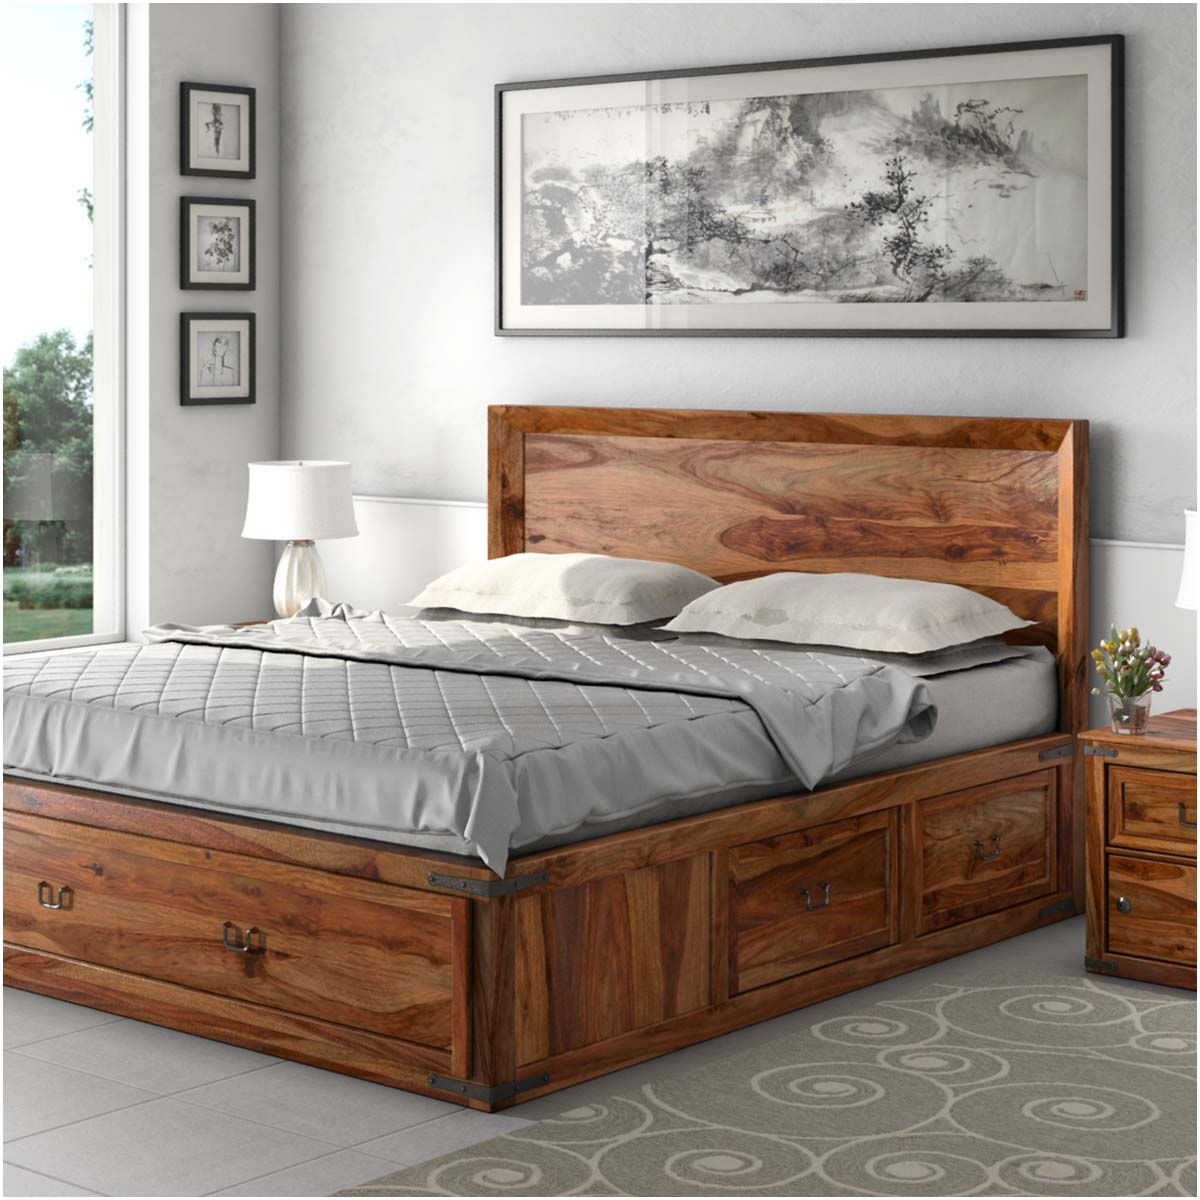 Warmth, coziness and authenticity in one: Solid wood beds